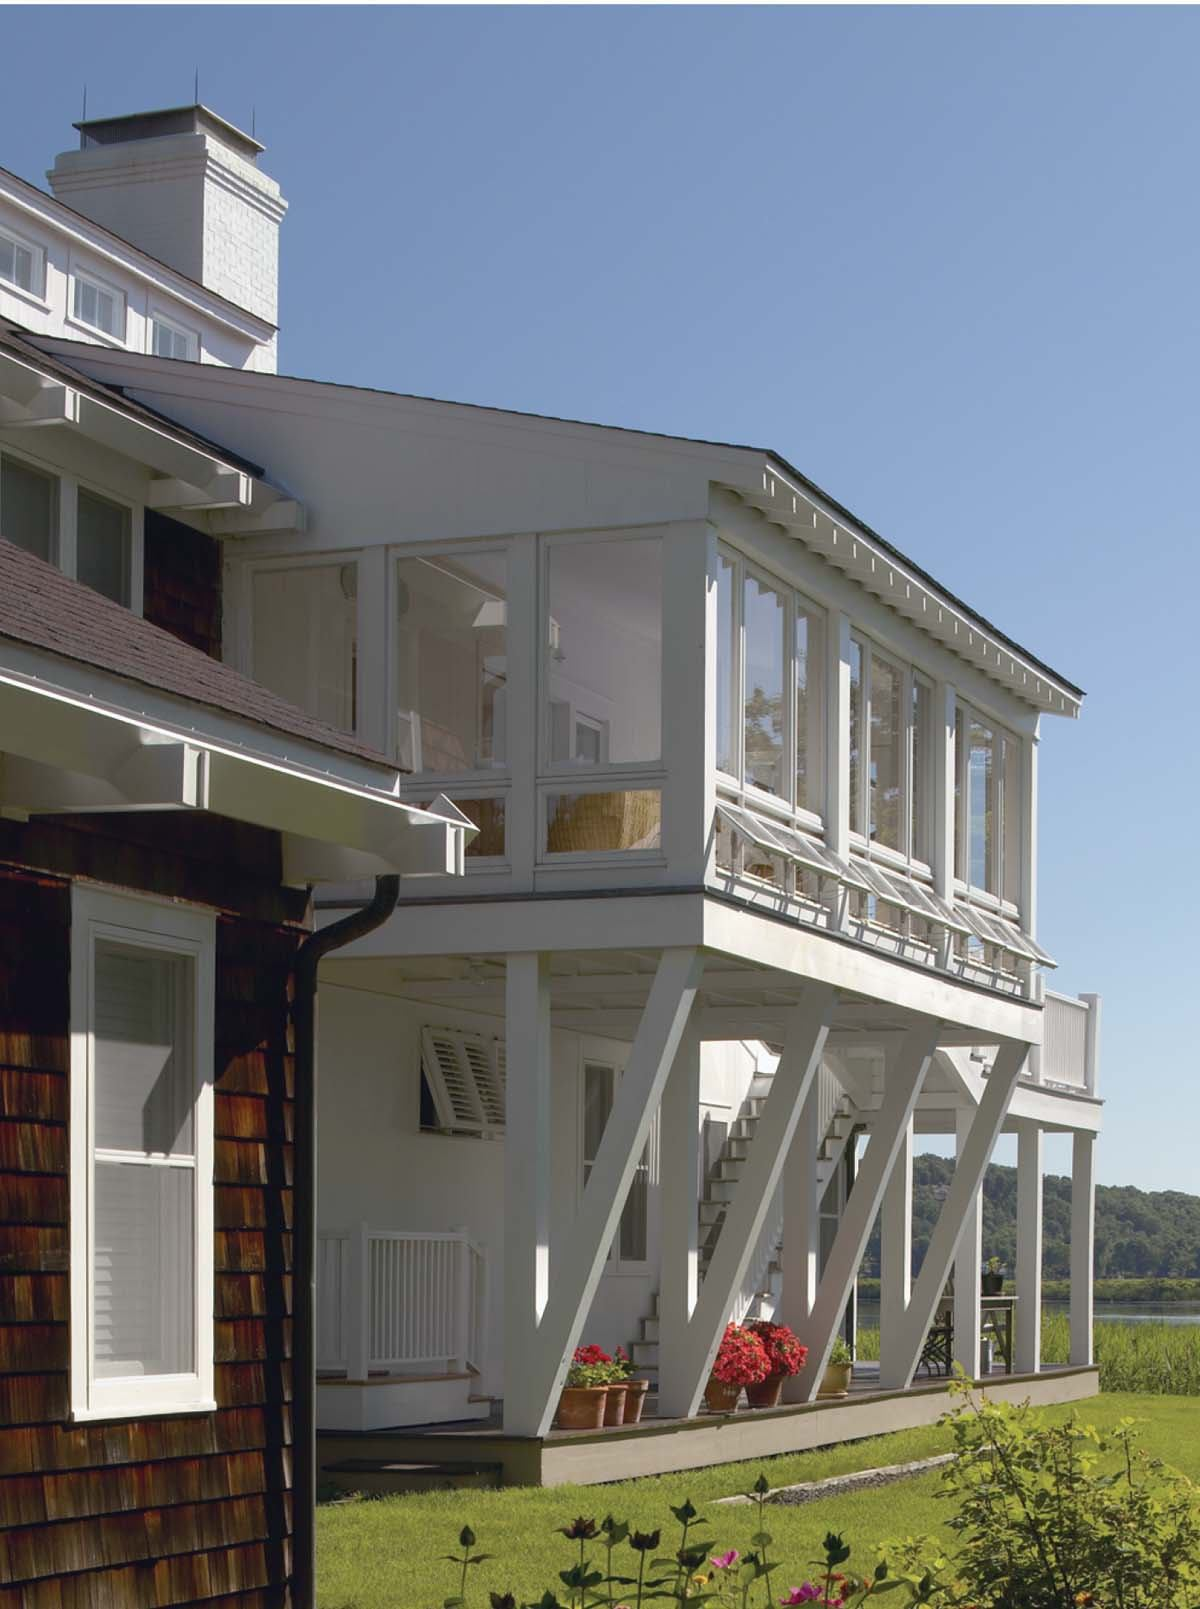 House on the connecticut river essex conn residential for Residential architect design awards